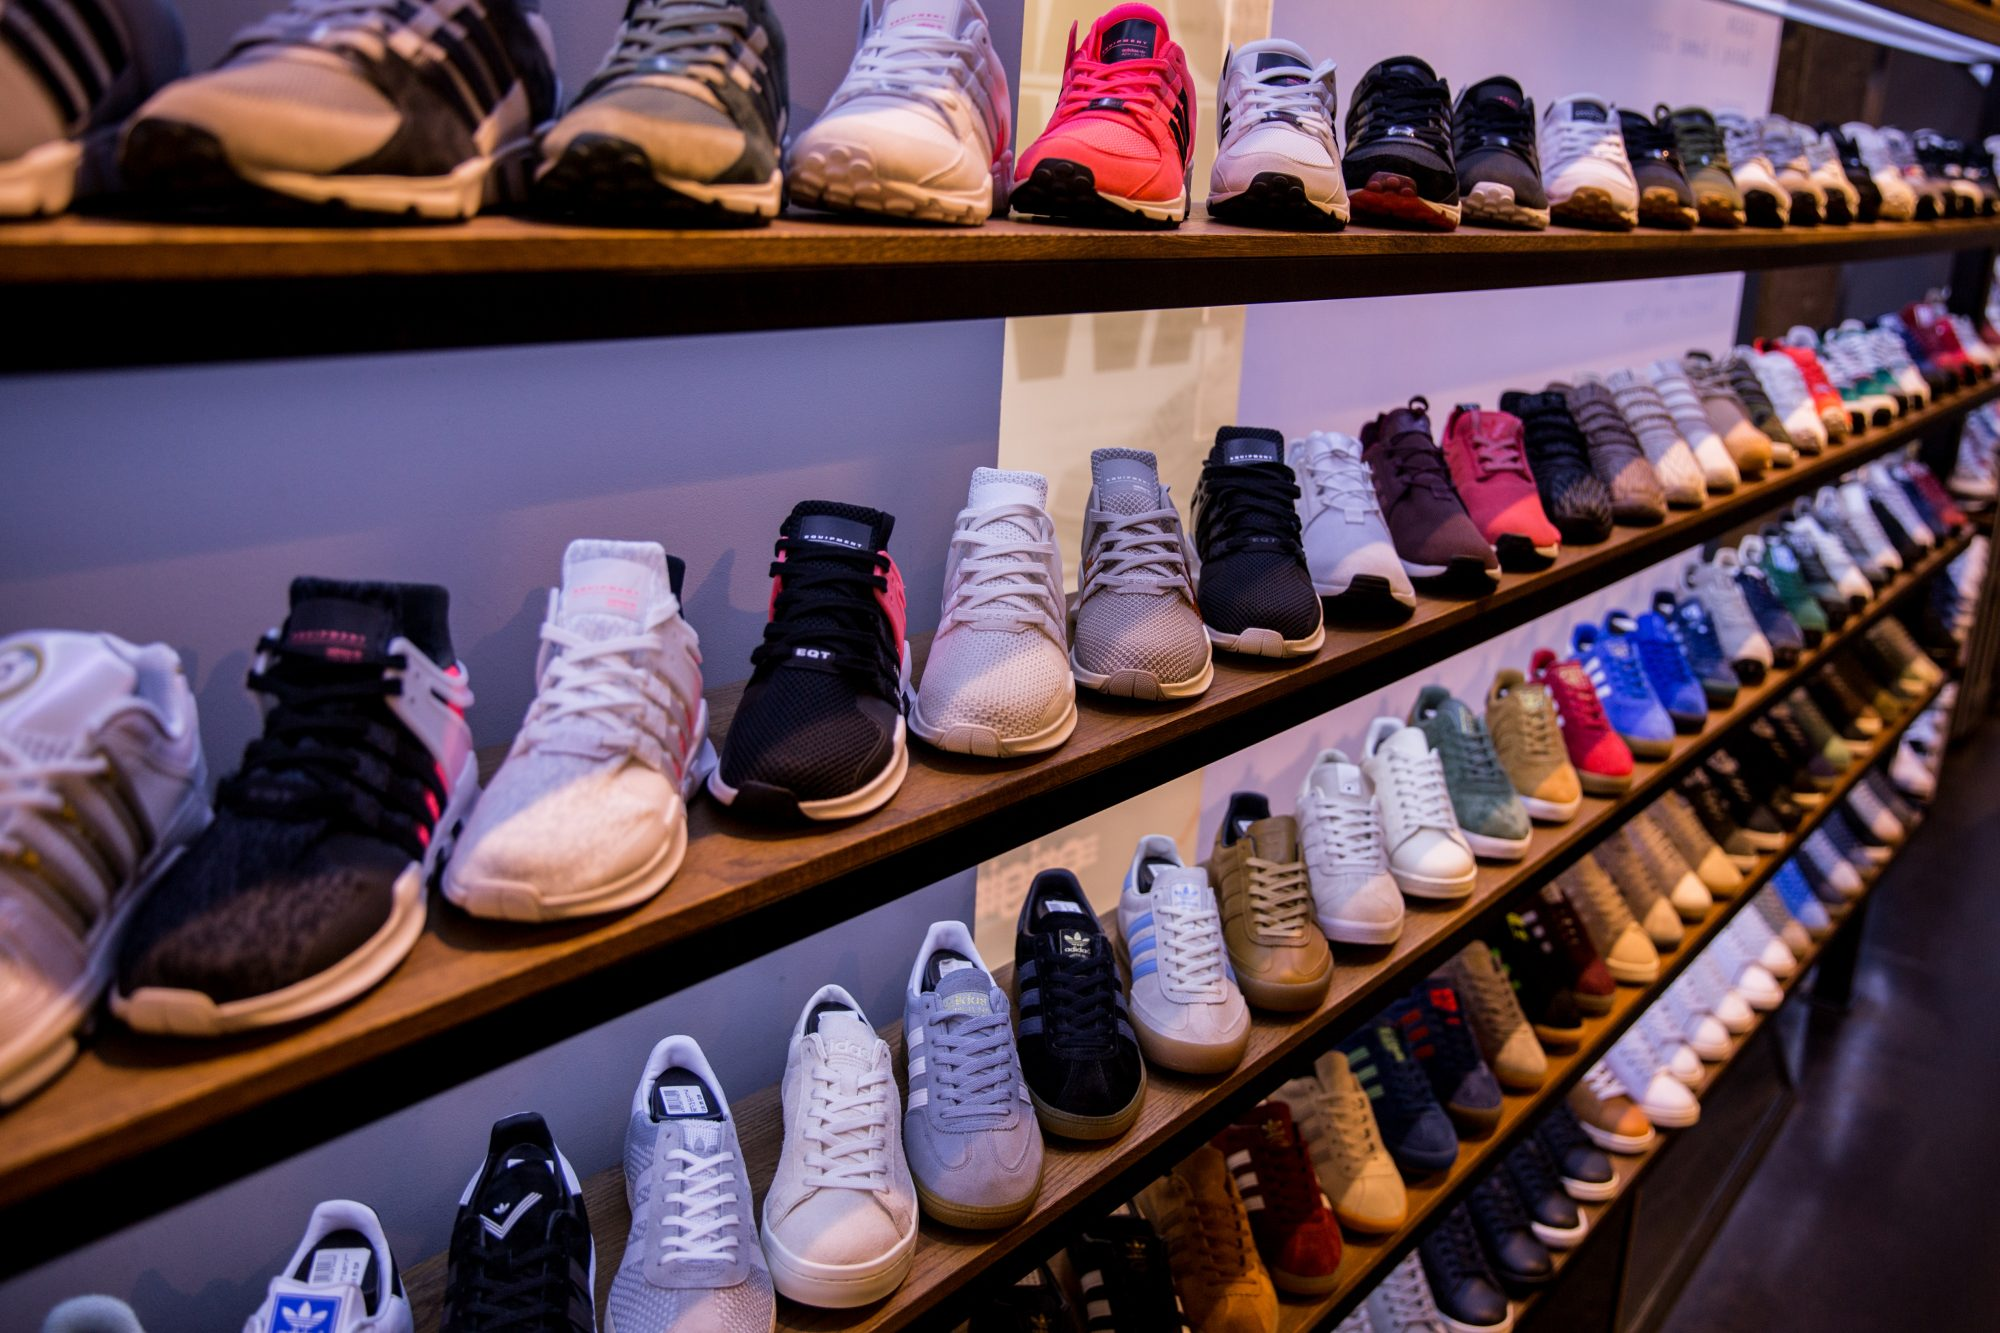 For Sneaker Fans Limited Production Shoes Are Worth A Five-Day Wait